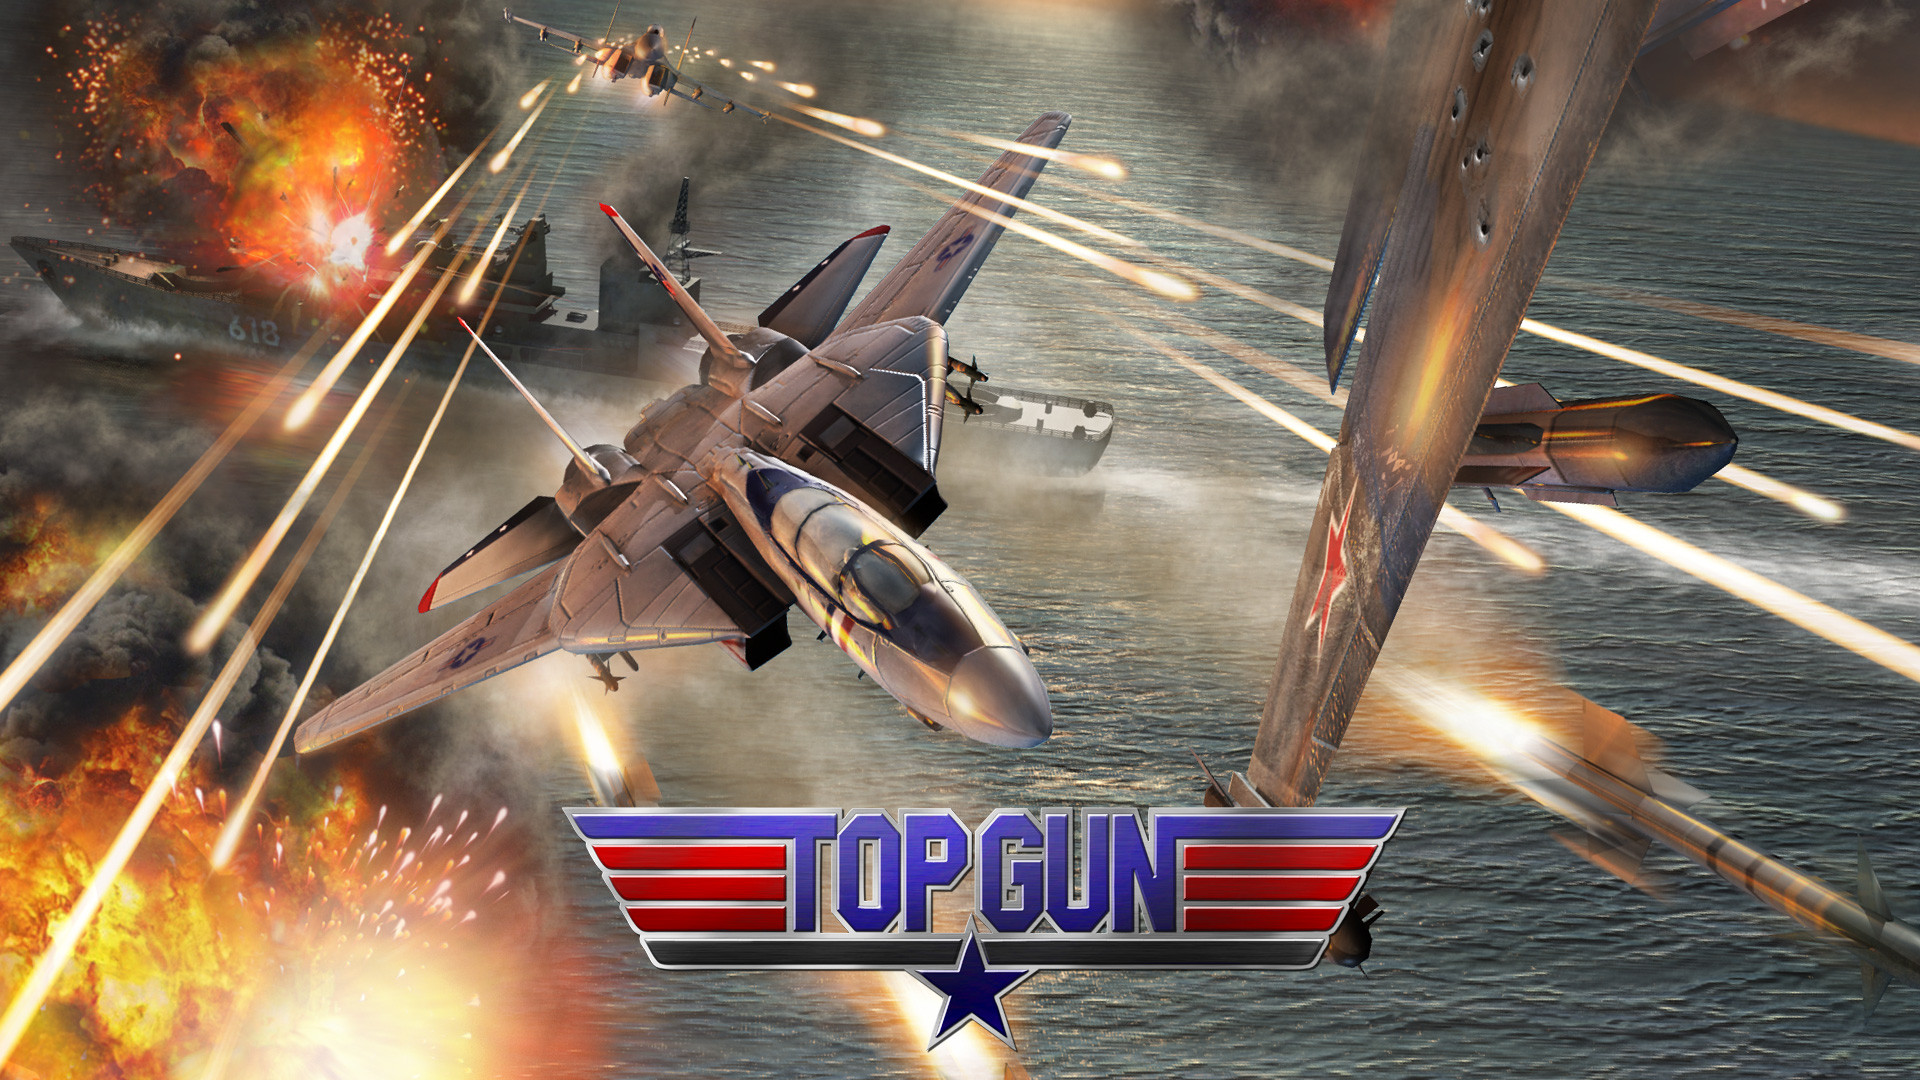 topgun/NavyEvent/wallpaper